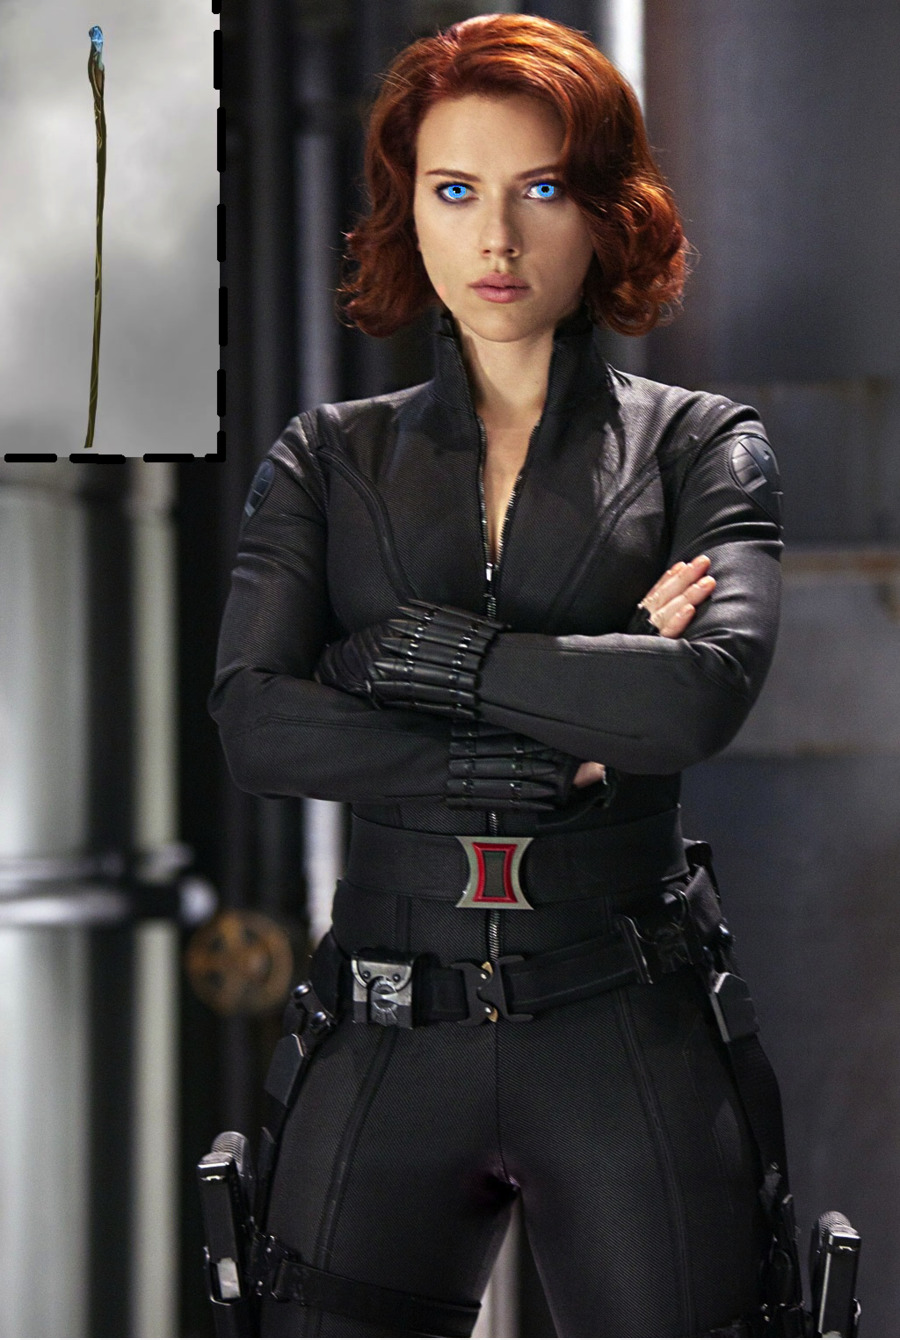 Png Scarlett Johansson Black Widow Captain America Iro 666723 on Black Brown Border